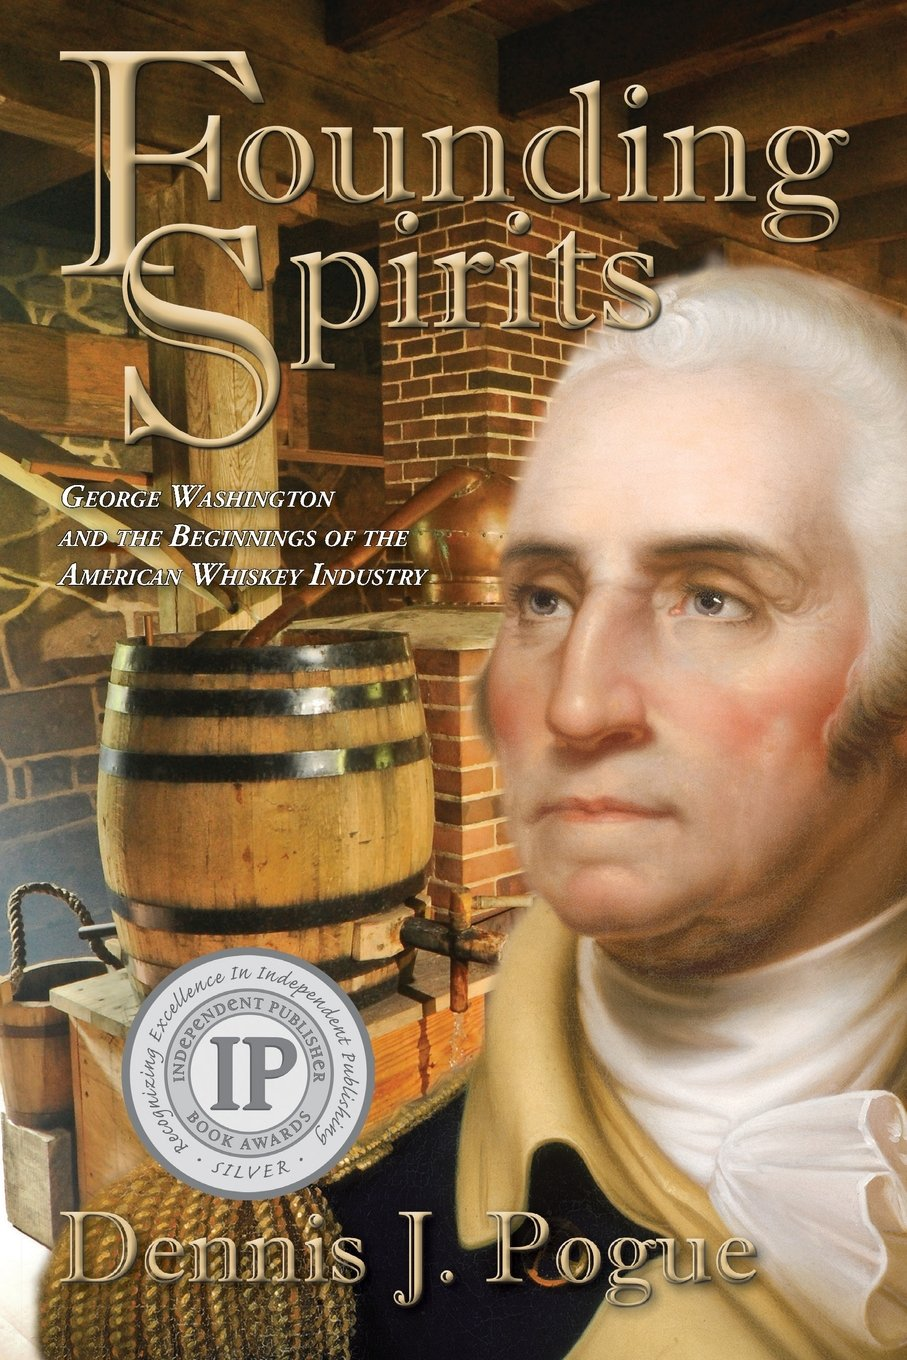 Founding Spirits: George Washington and the Beginnings of the American Whiskey